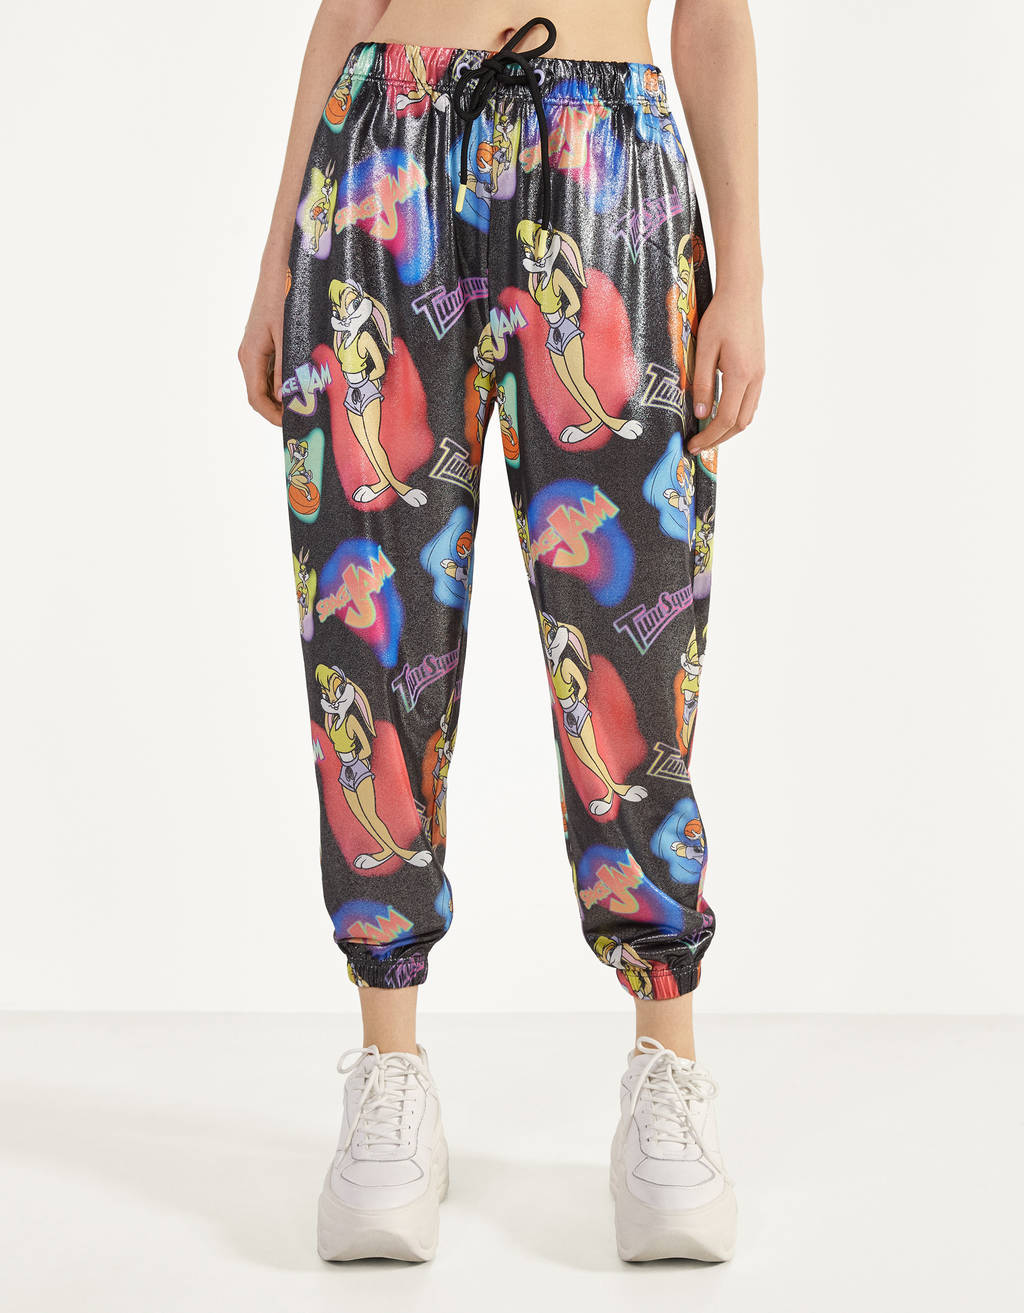 Space Jam x Bershka joggingbroek